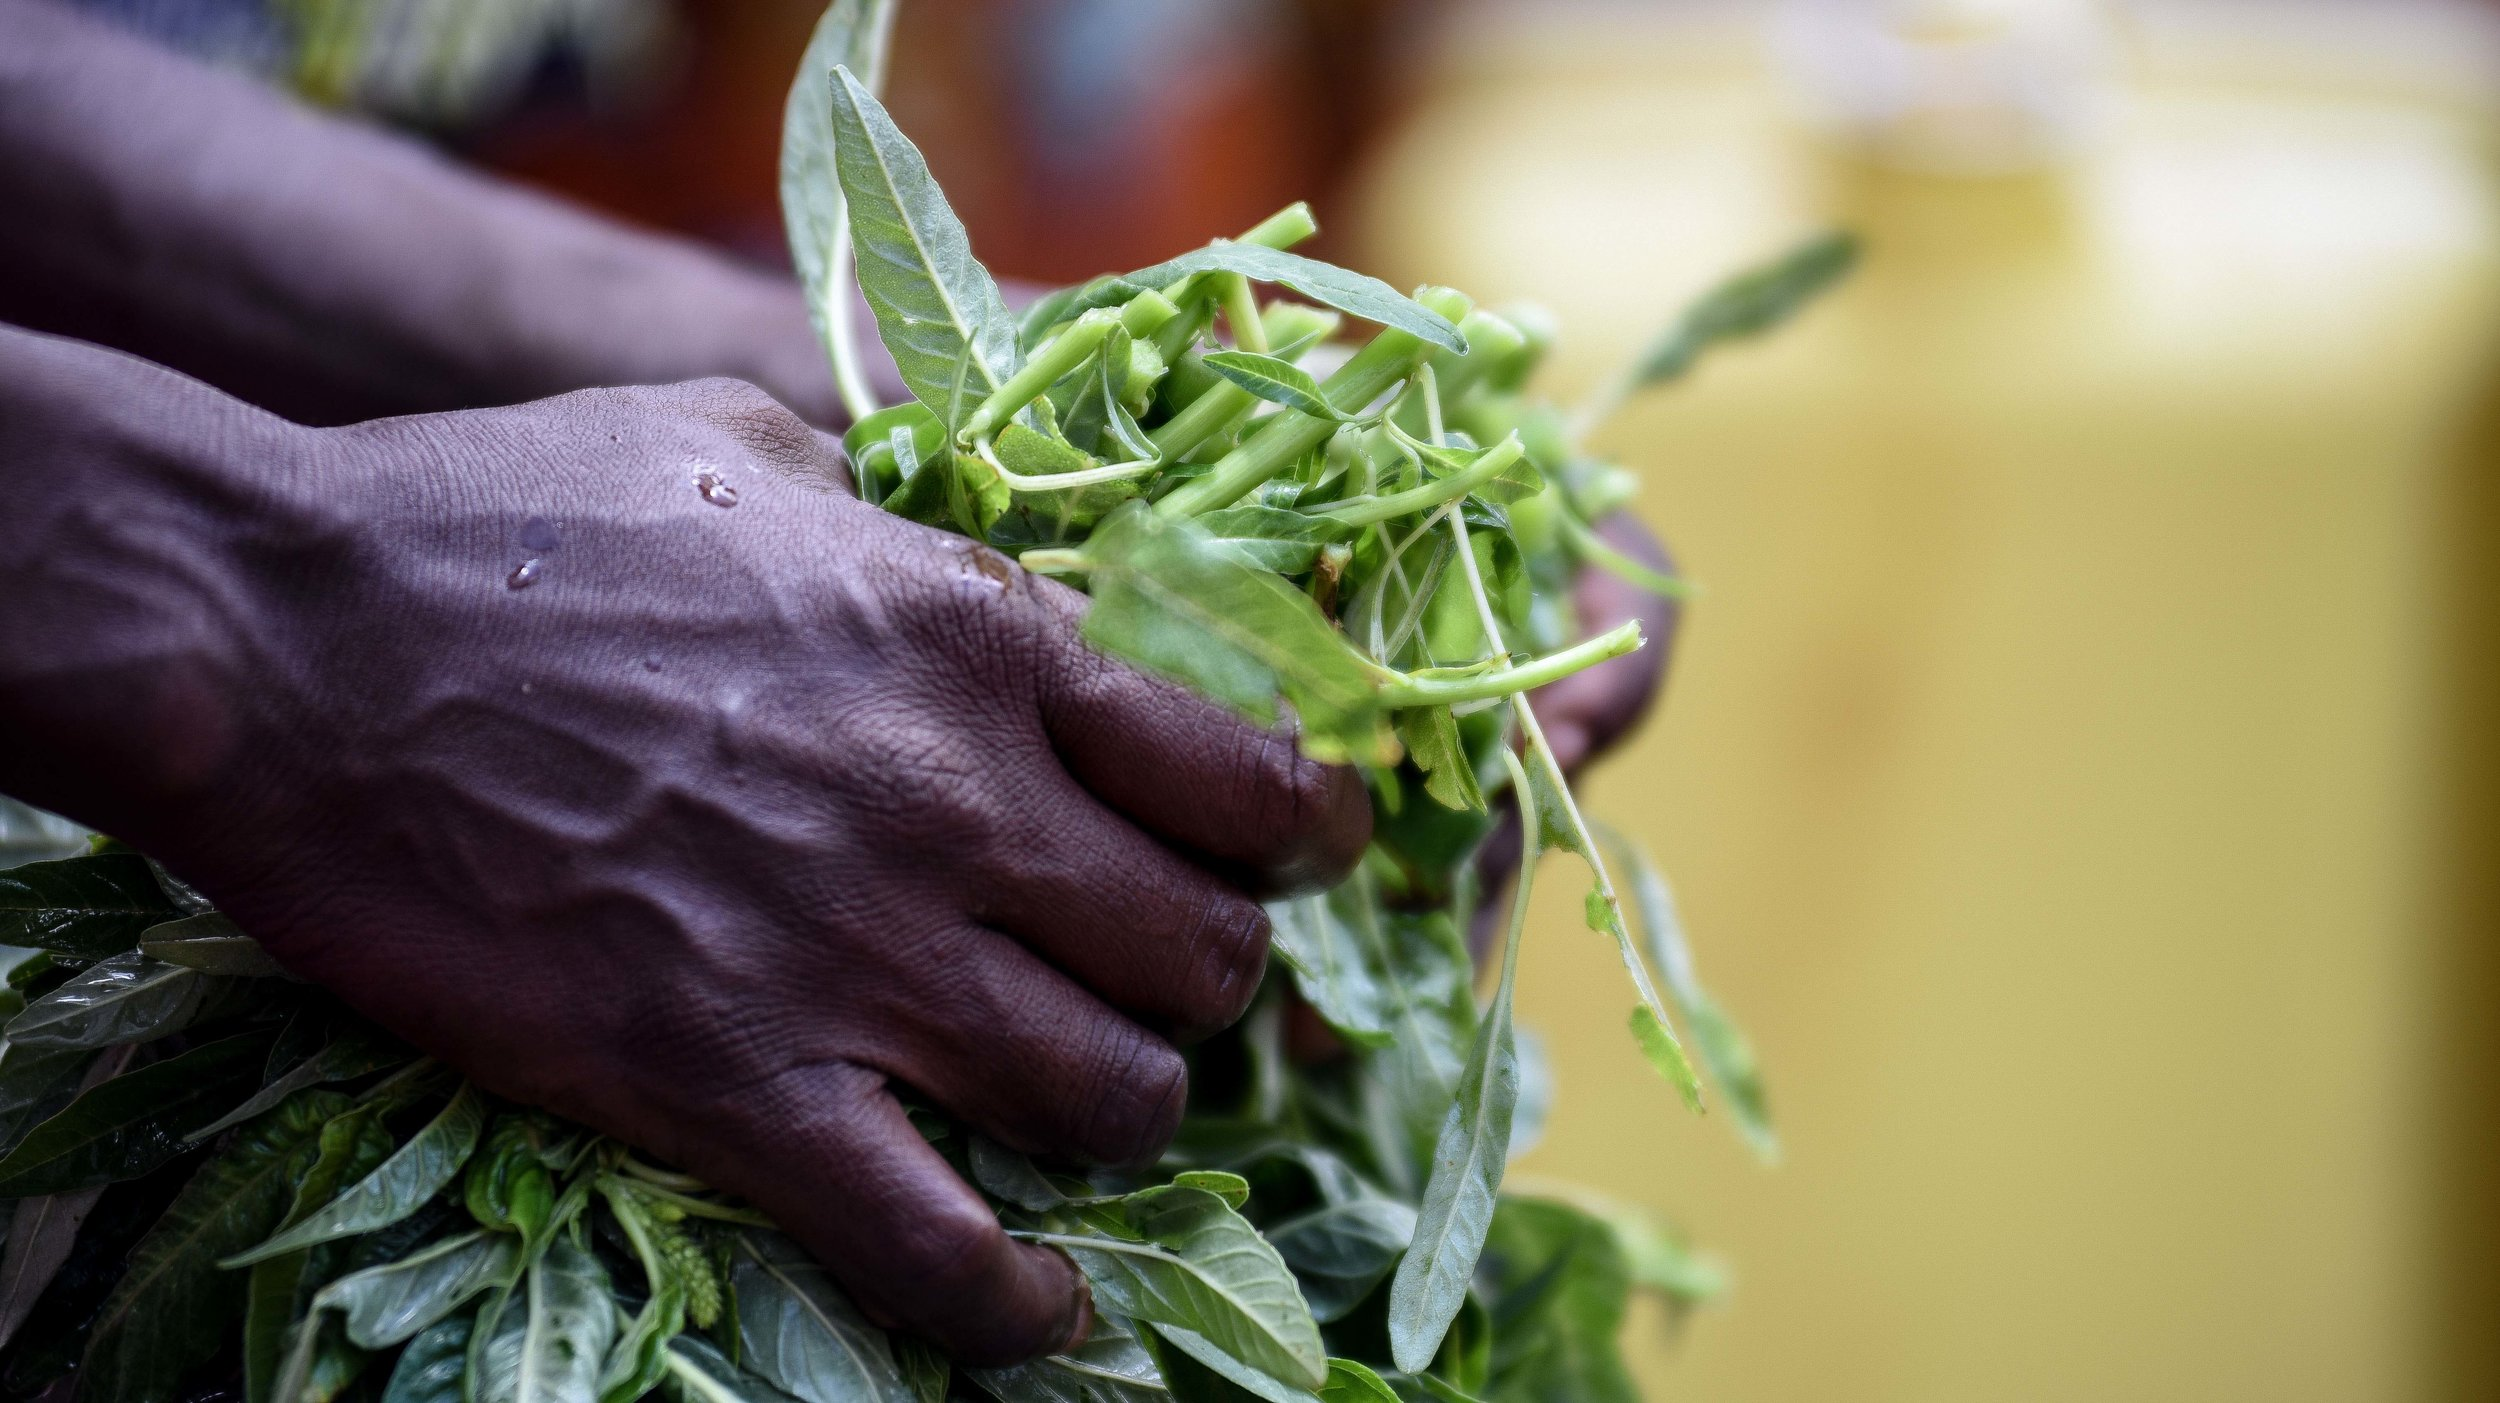 Fresh dodo (a  marynth)leaves are included in the Mahama Refugee Camp cooking demonstration, hosted and performed by GHI over two days.